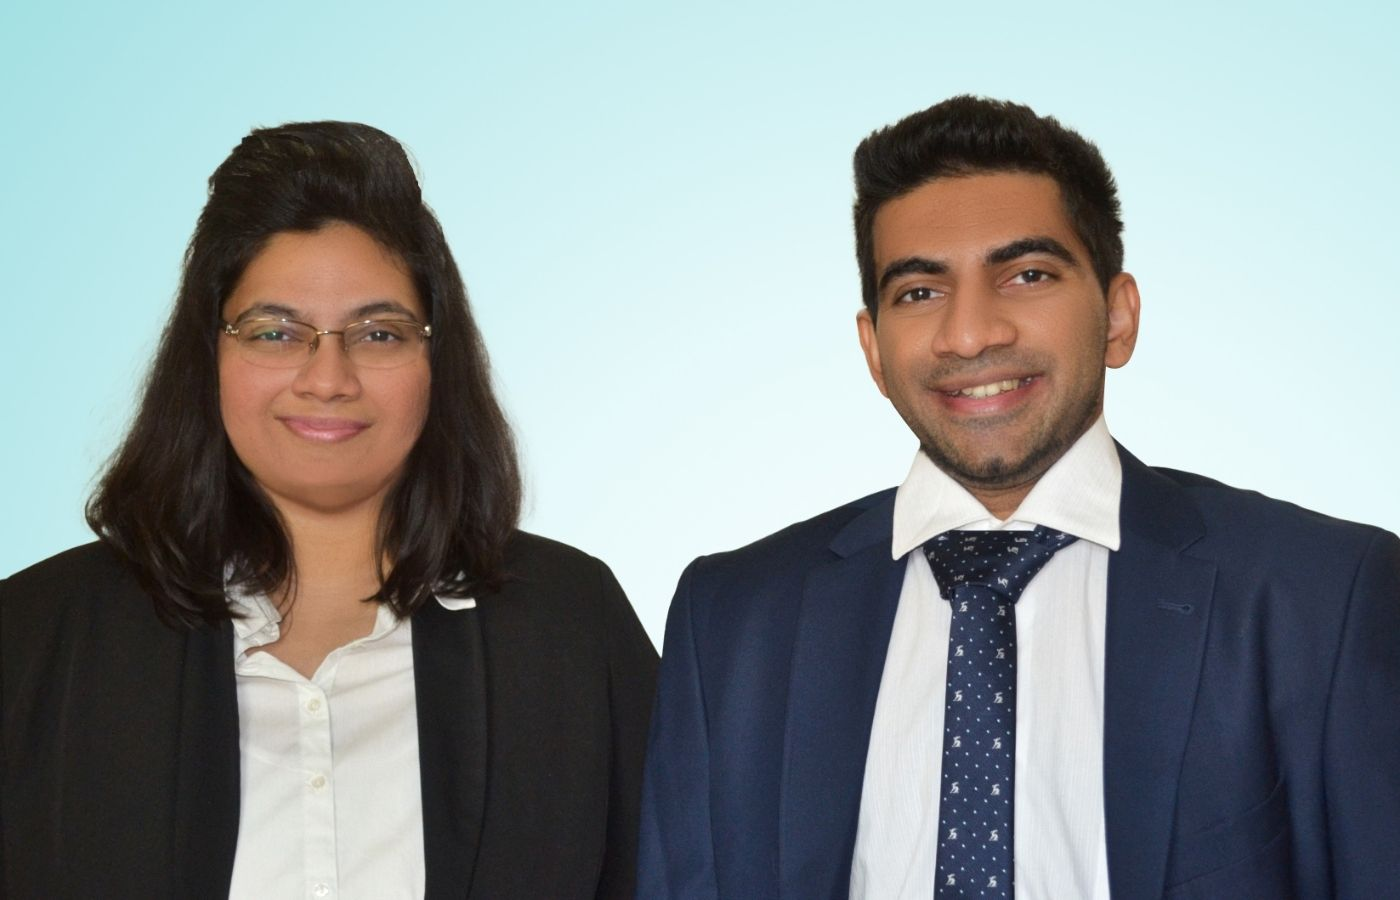 Kevin and Rukshani Peiris, Founders of Happy Paws